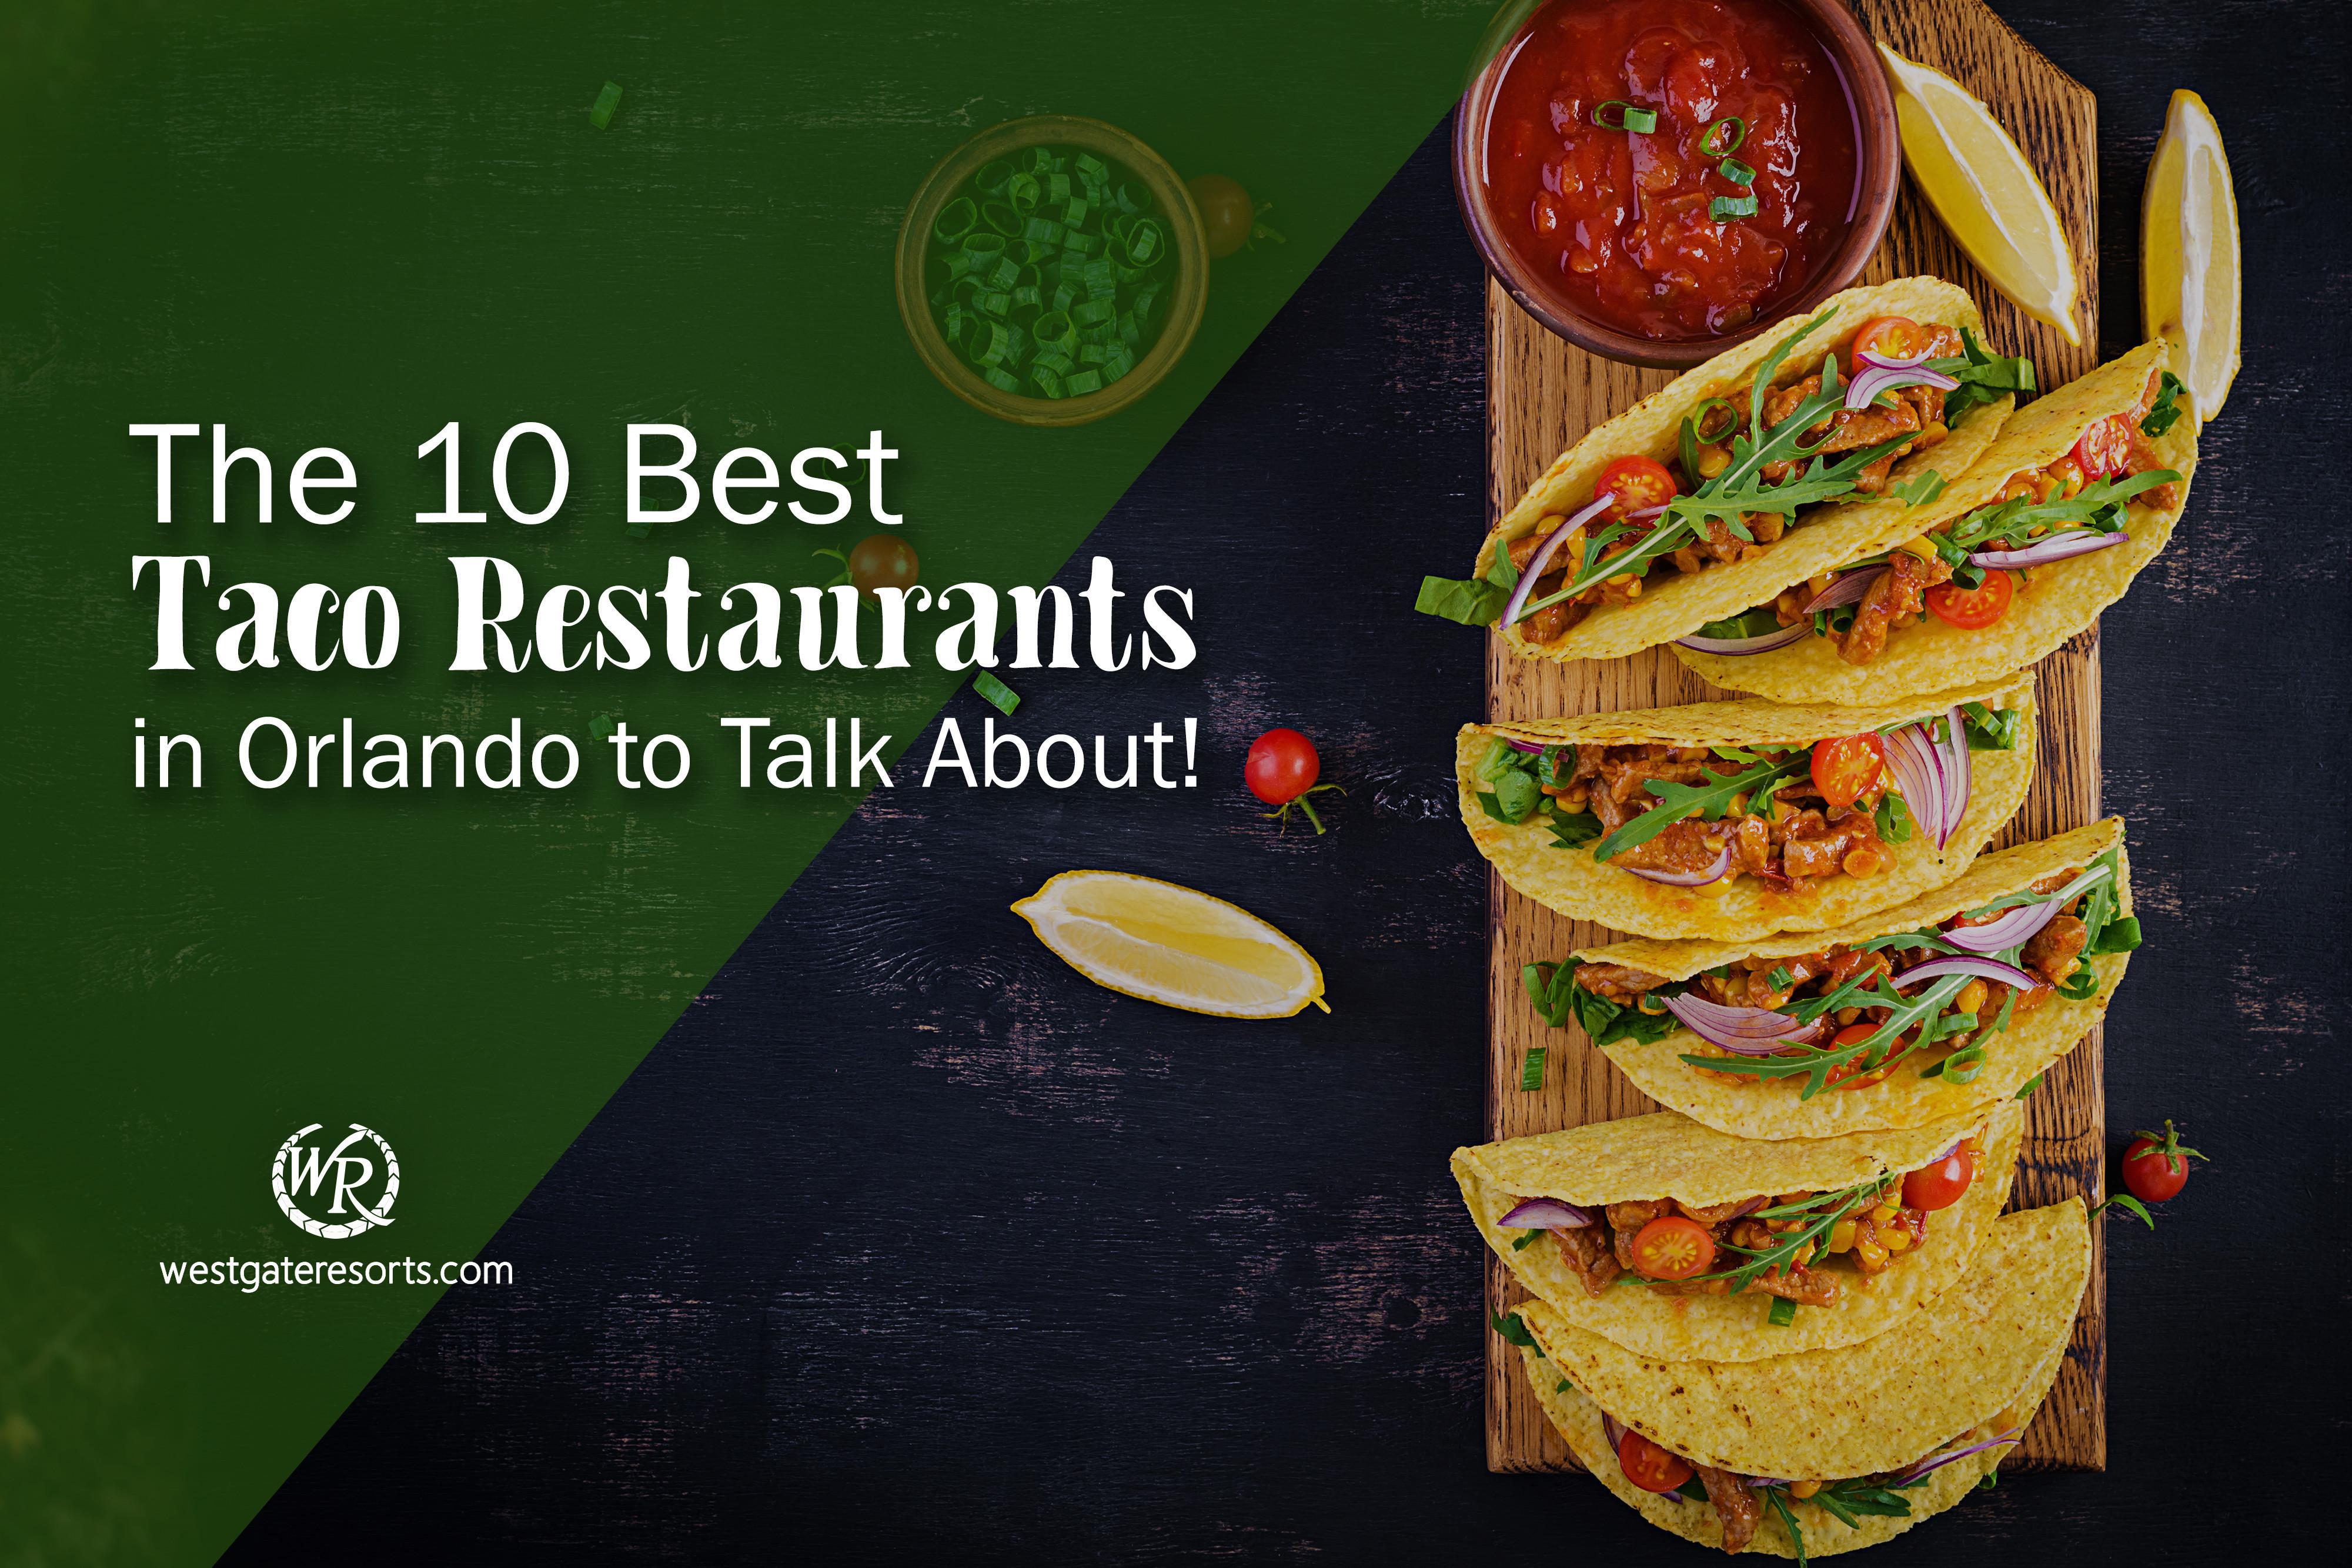 The 10 Best Taco Restaurants in Orlando to Taco Bout (Talk About!)